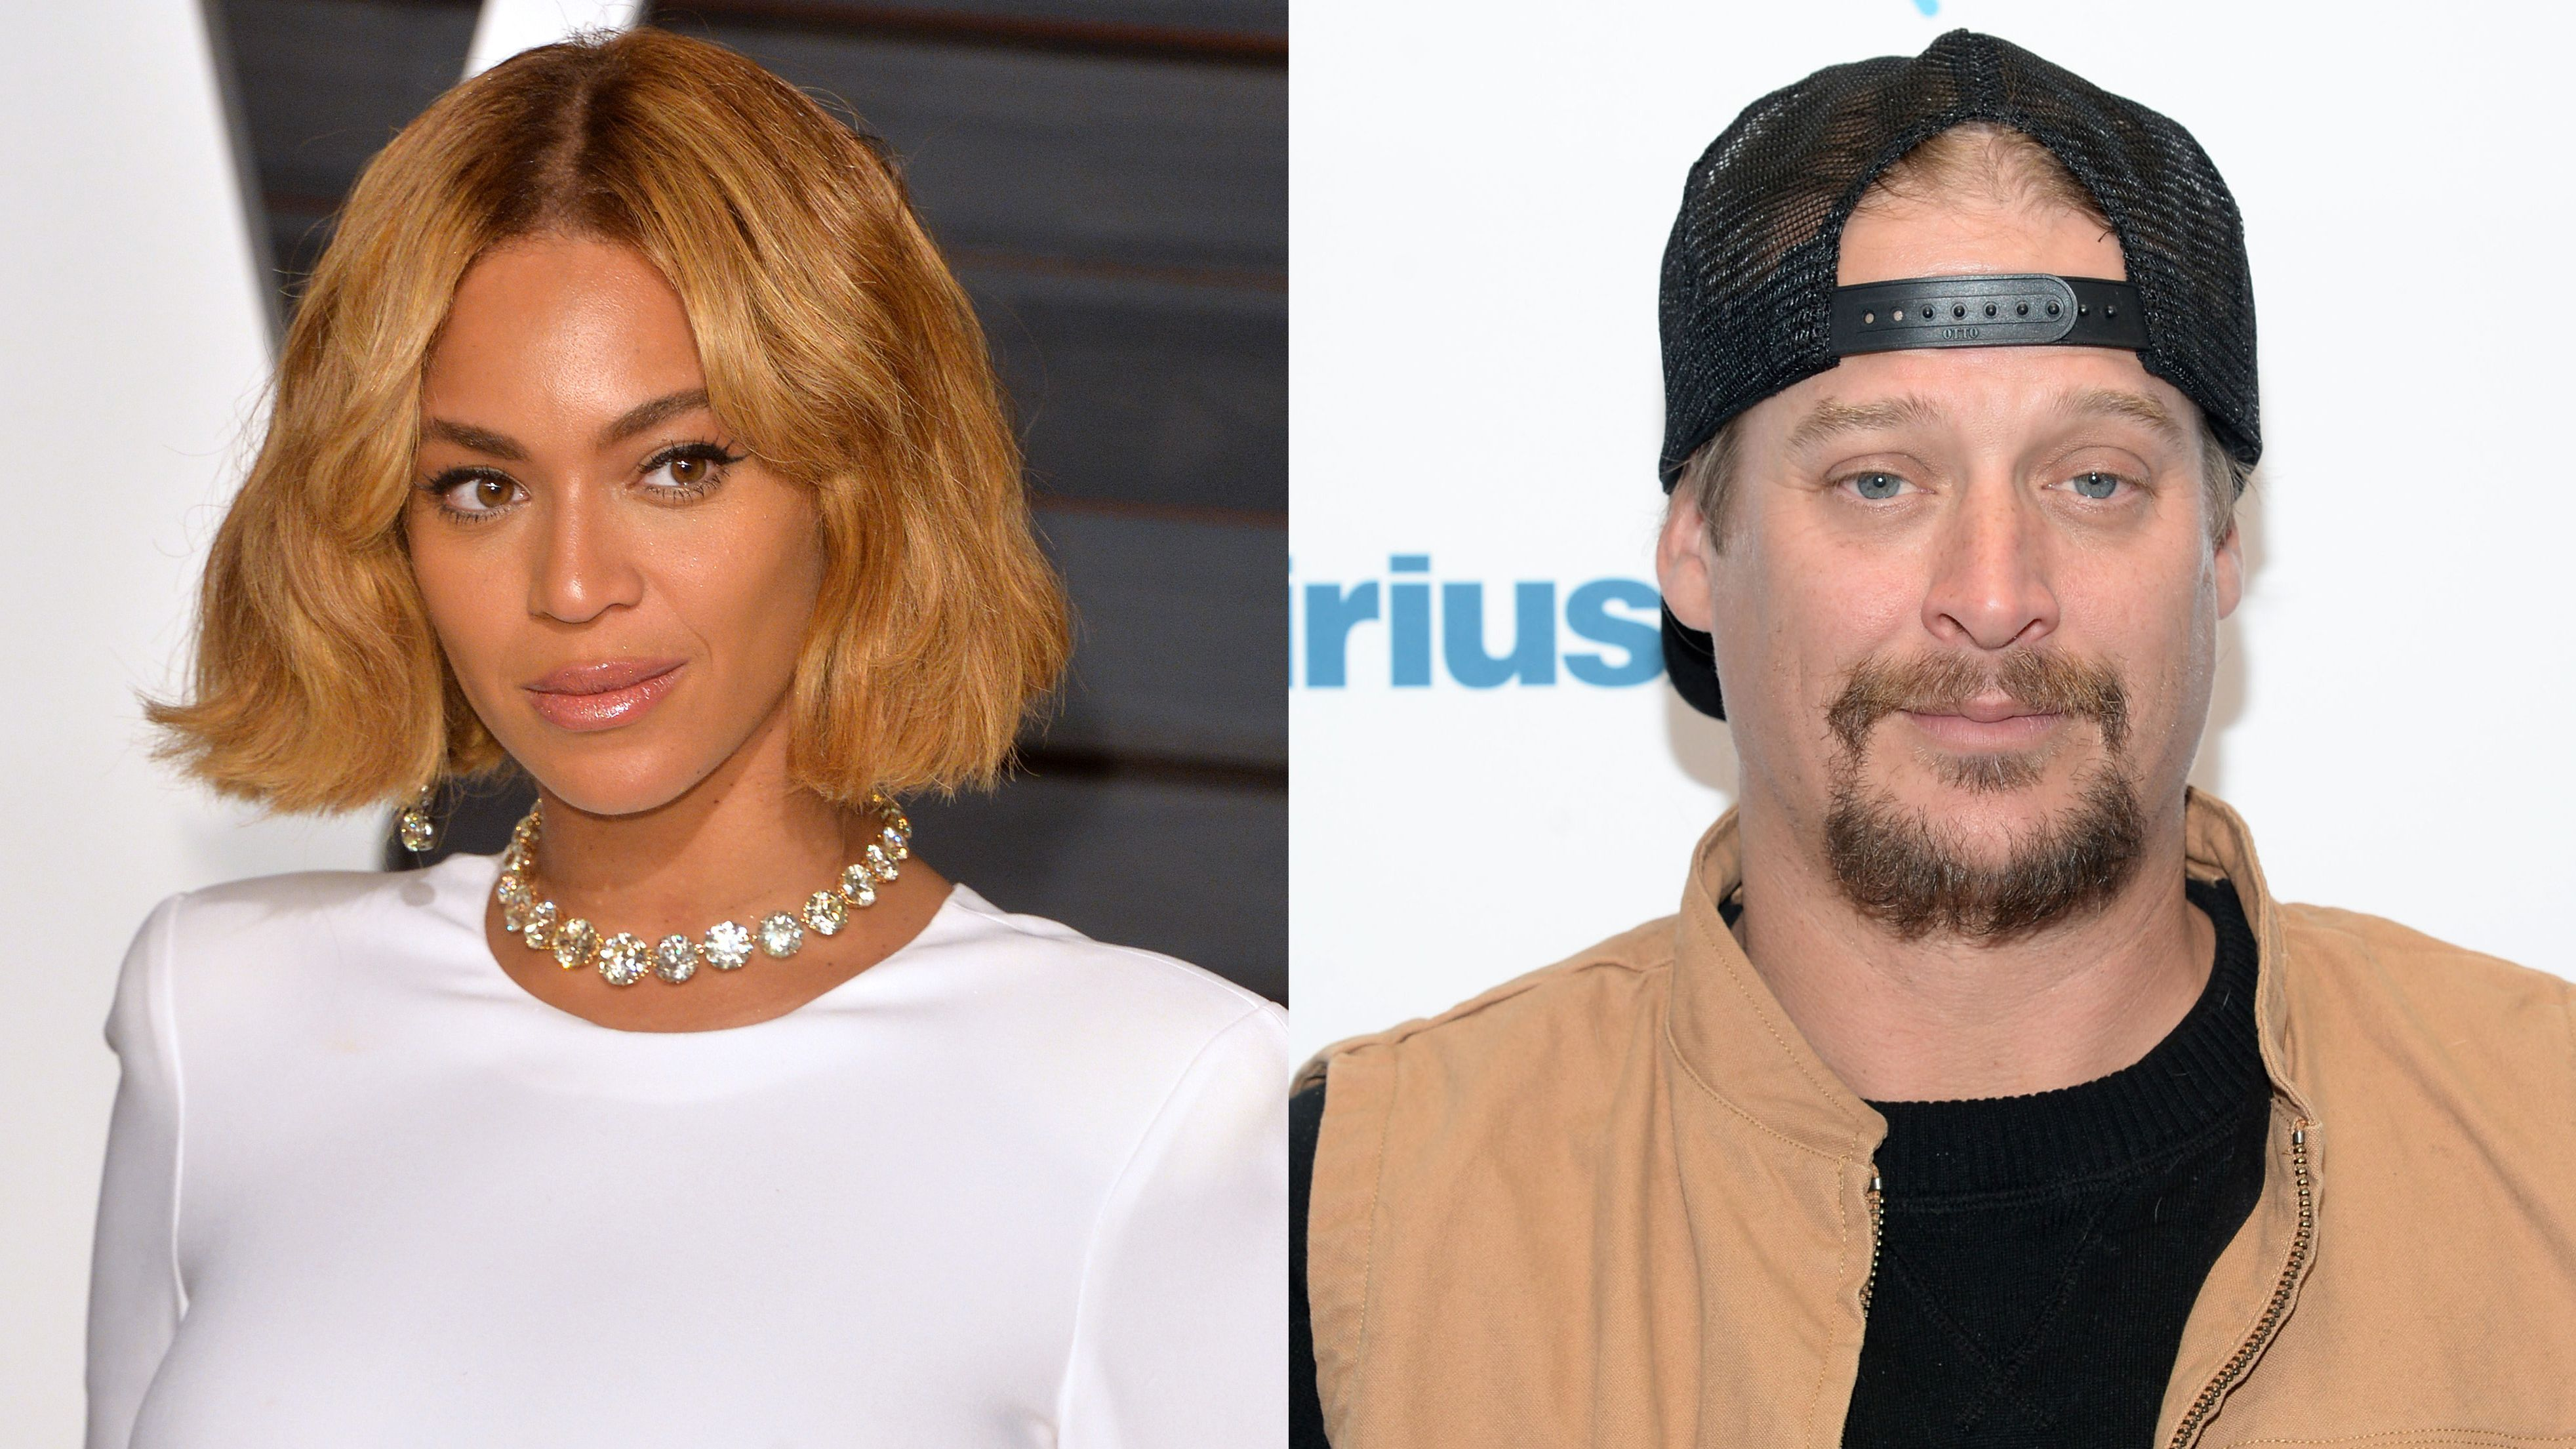 Beyonce Fans Are Spamming Kid Rock's Insta With Bees: Here's